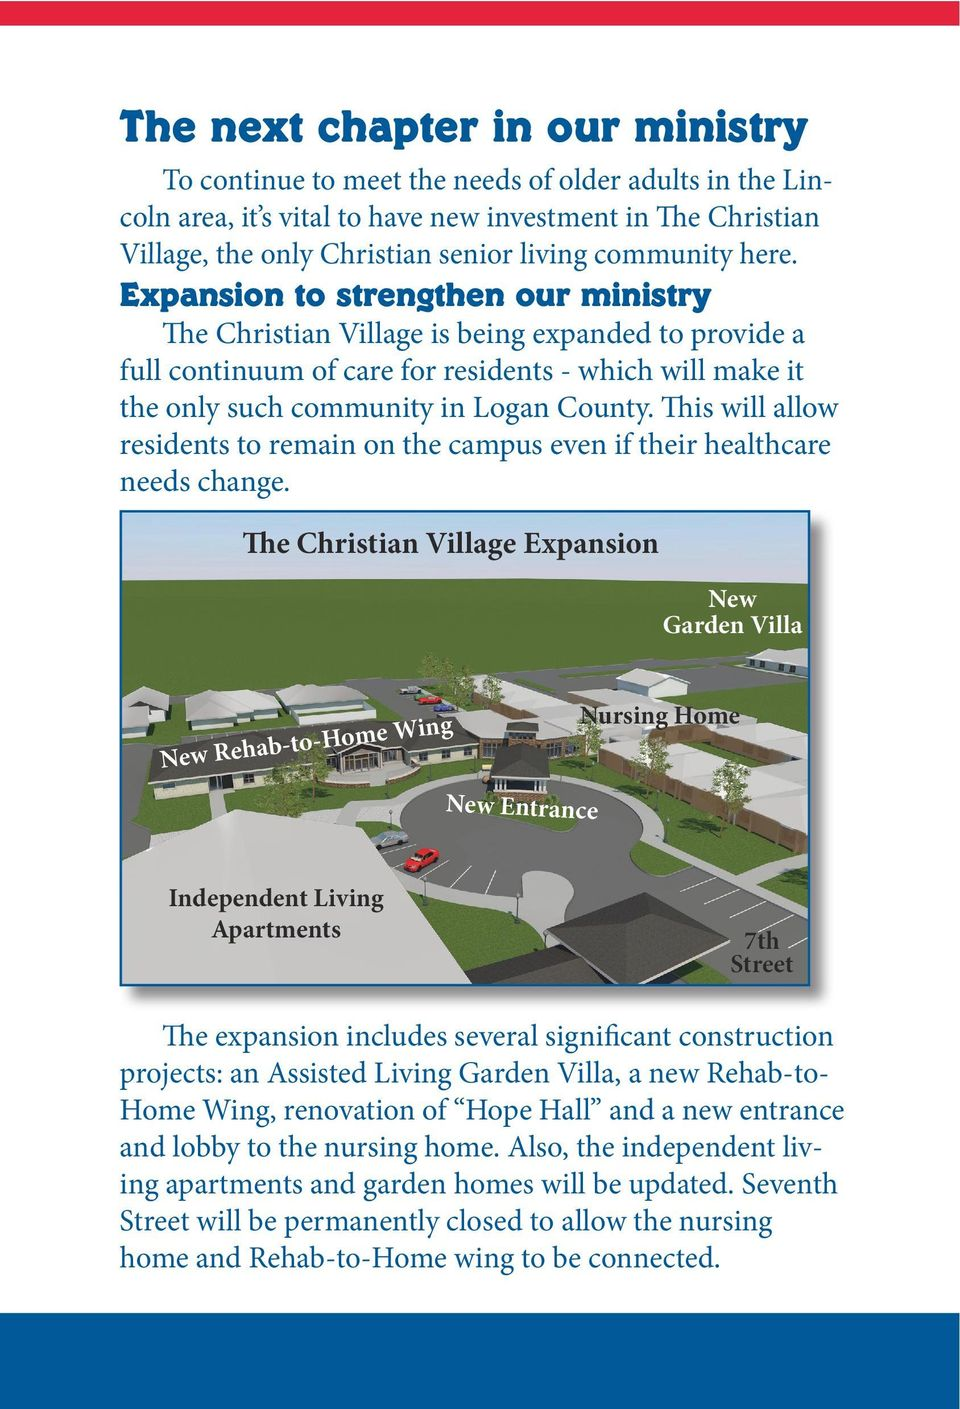 Expansion to strengthen our ministry The Christian Village is being expanded to provide a full continuum of care for residents - which will make it the only such community in Logan County.